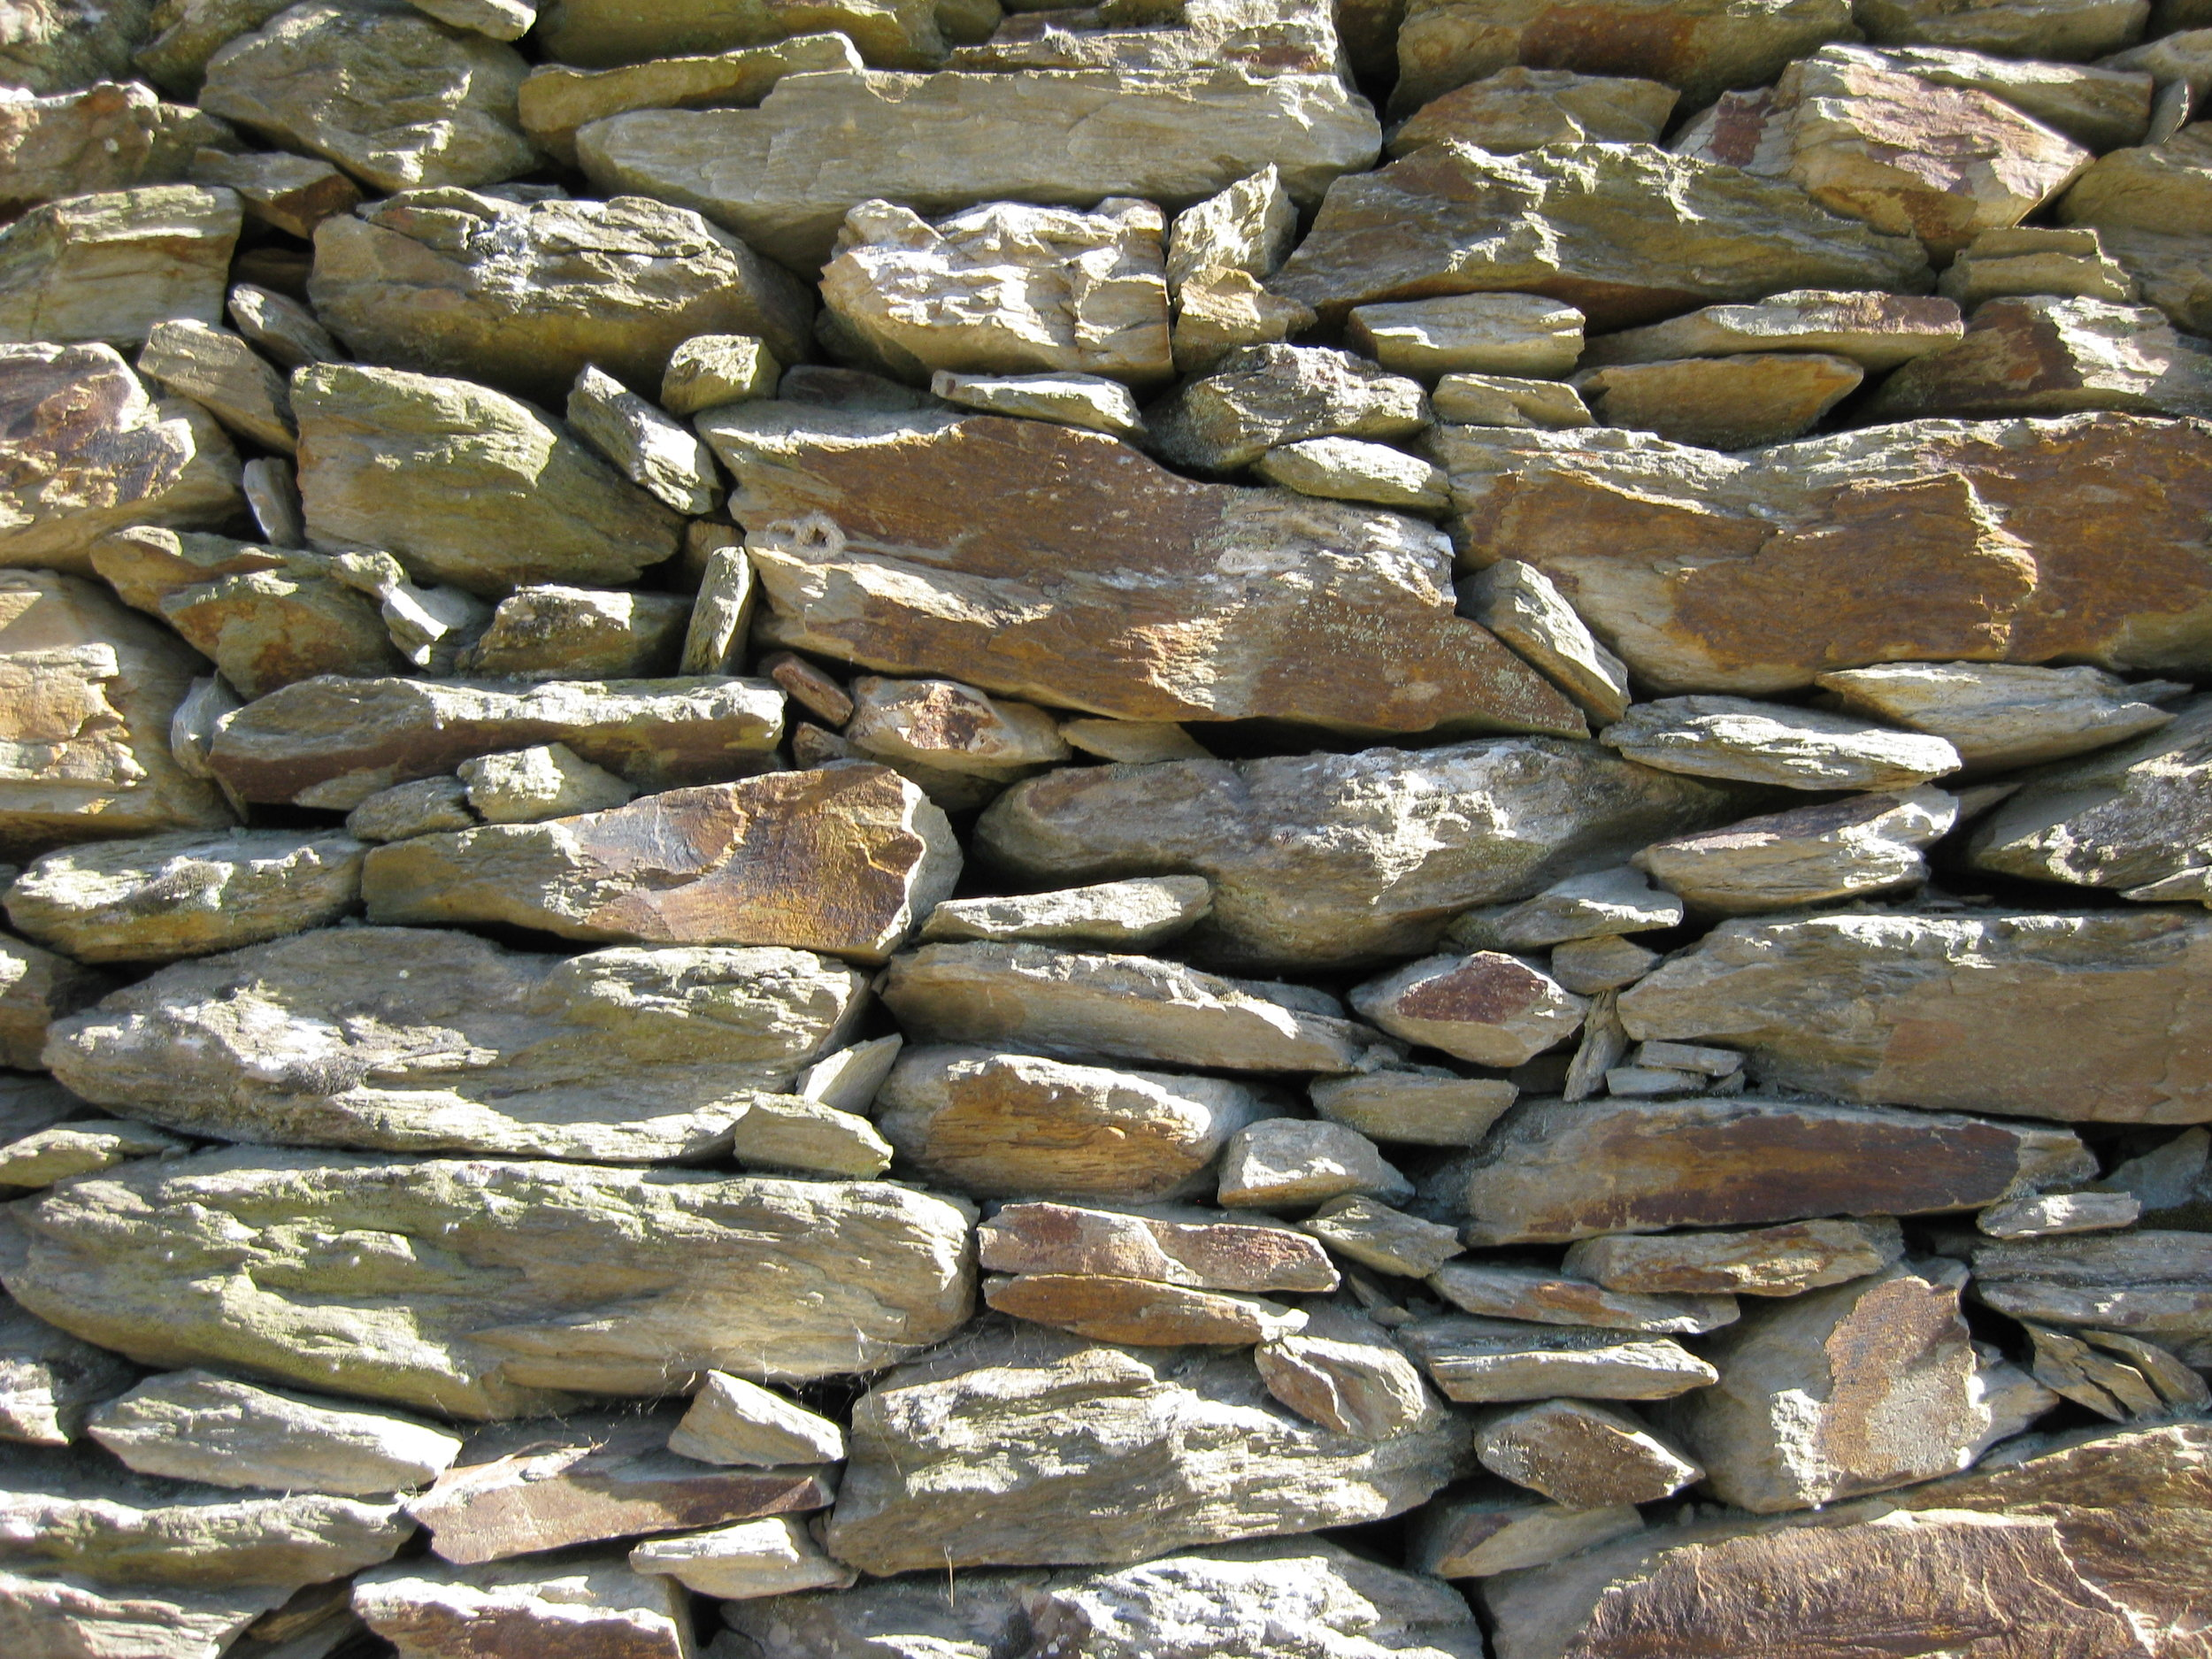 Typical Douro Valley schist wall - stones are softer and smaller stones keep soil in place.